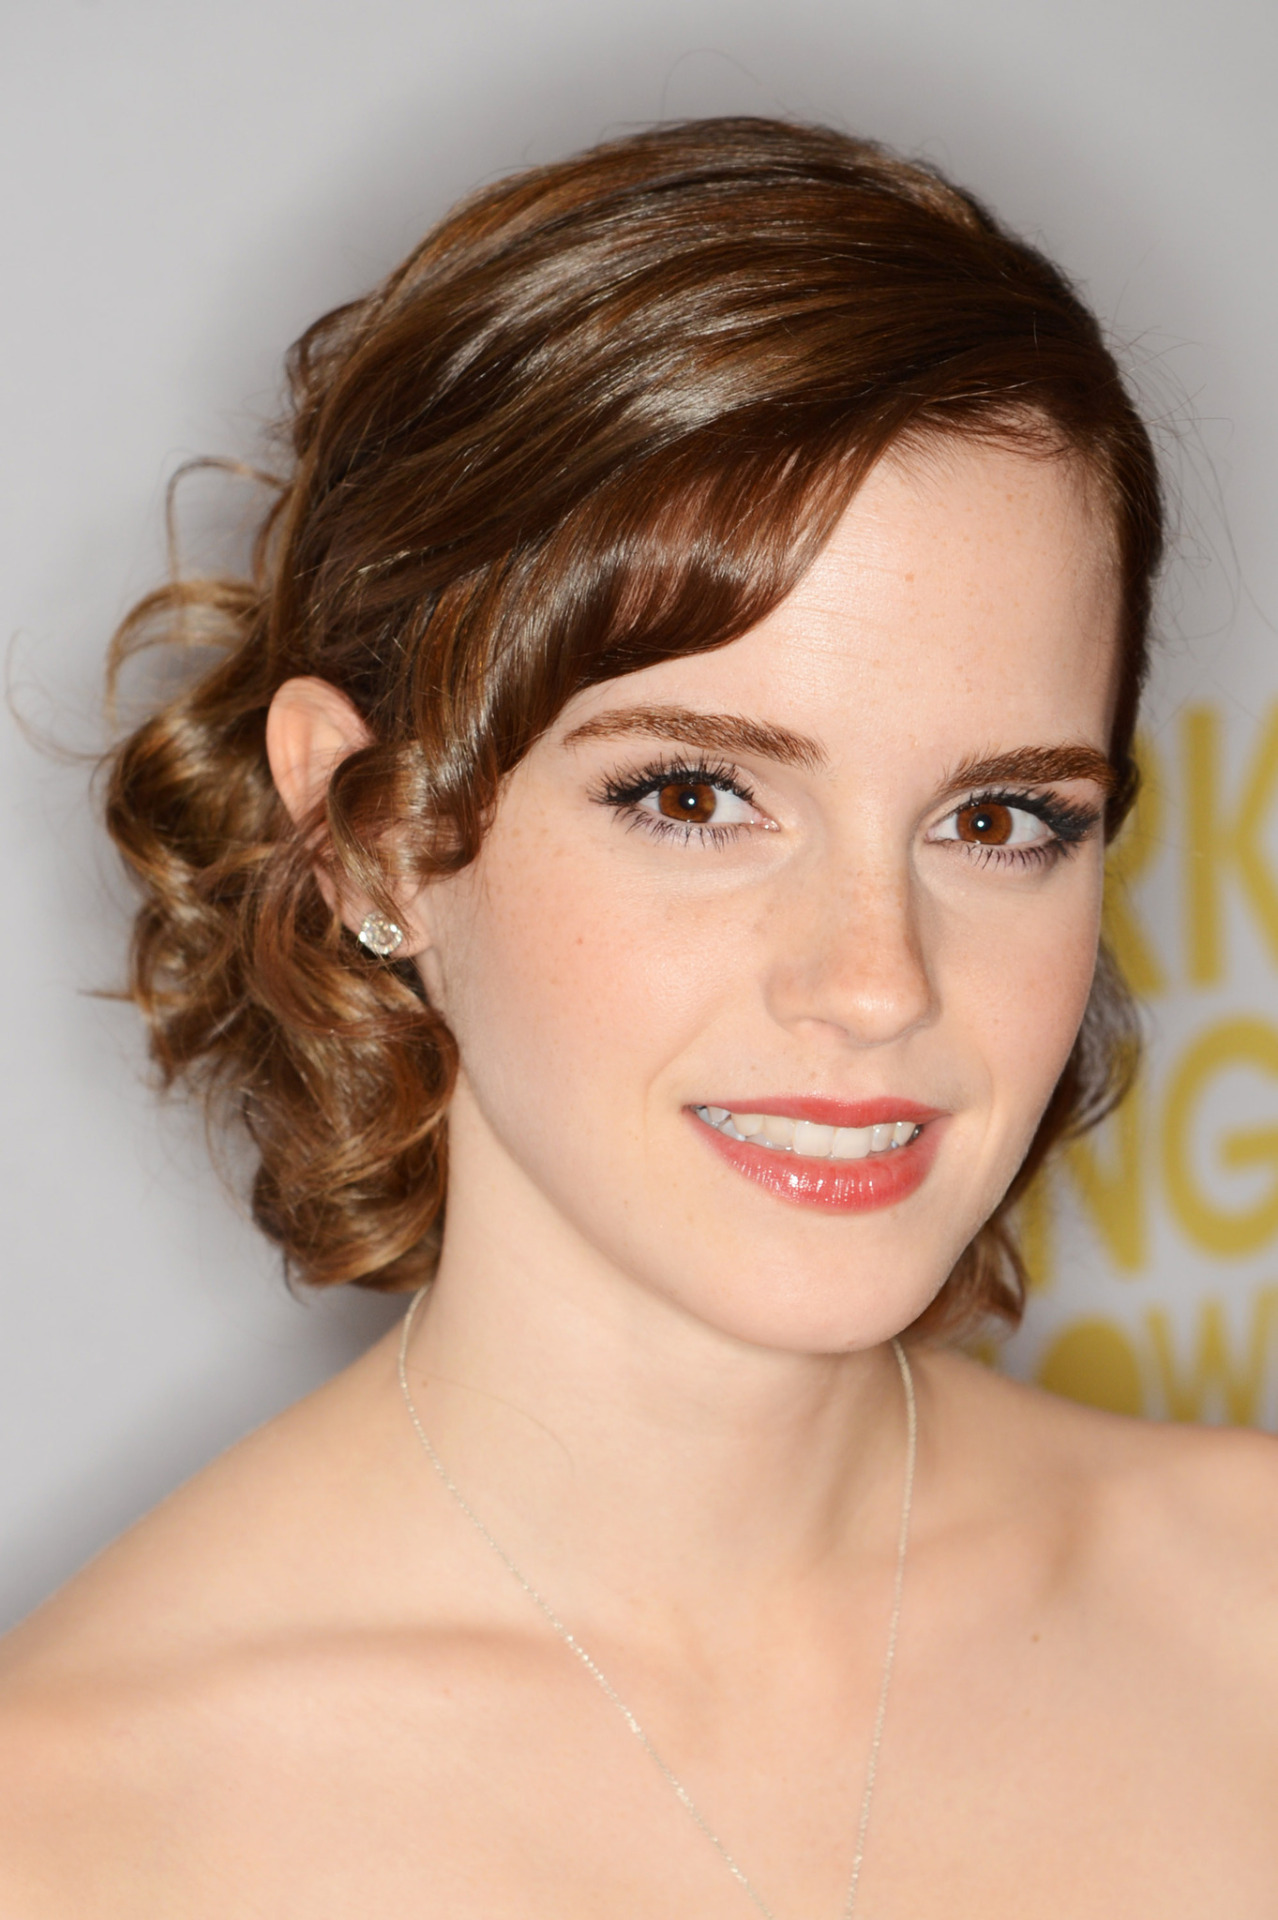 ti5o5o followed Emma Watson on MovieLaLa